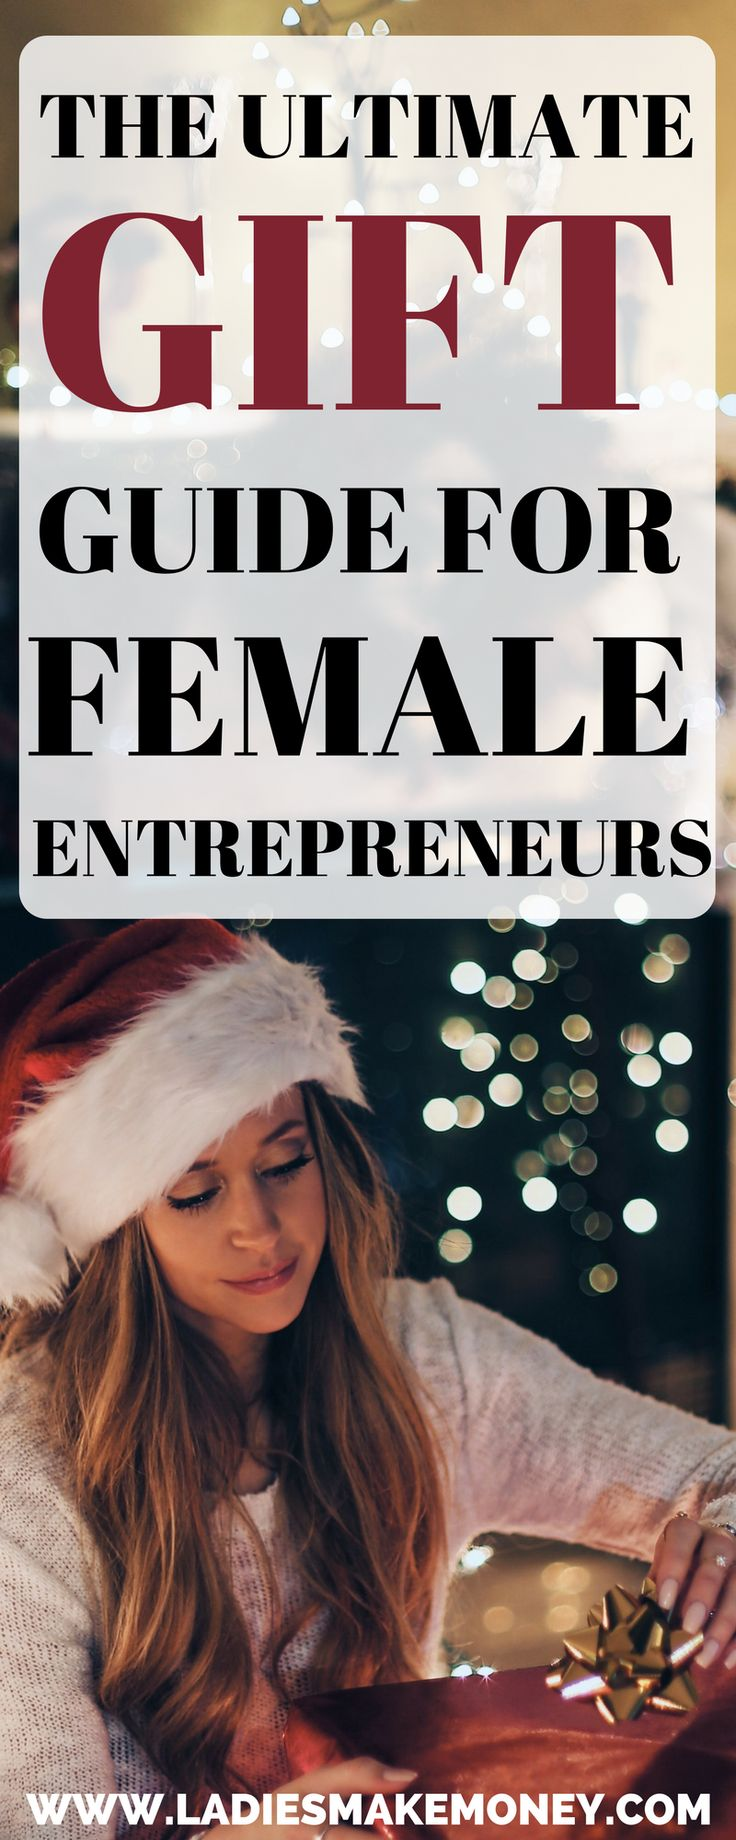 The perfect gift guide for you to get that boss babe. Are you Christmas shopping? If you want to get the perfect gift for her, take a look at this holiday gift guide we created. Christmas gift ideas diy full of ideas for Christmas gift Ideas. Christmas gift ideas diy cheap you can get for the women in your life. Christmas gift ideas for women, these are the perfect Christmas gift ideas for coworkers. This is the Ultimate gift guide for women for the holiday season #gifts...